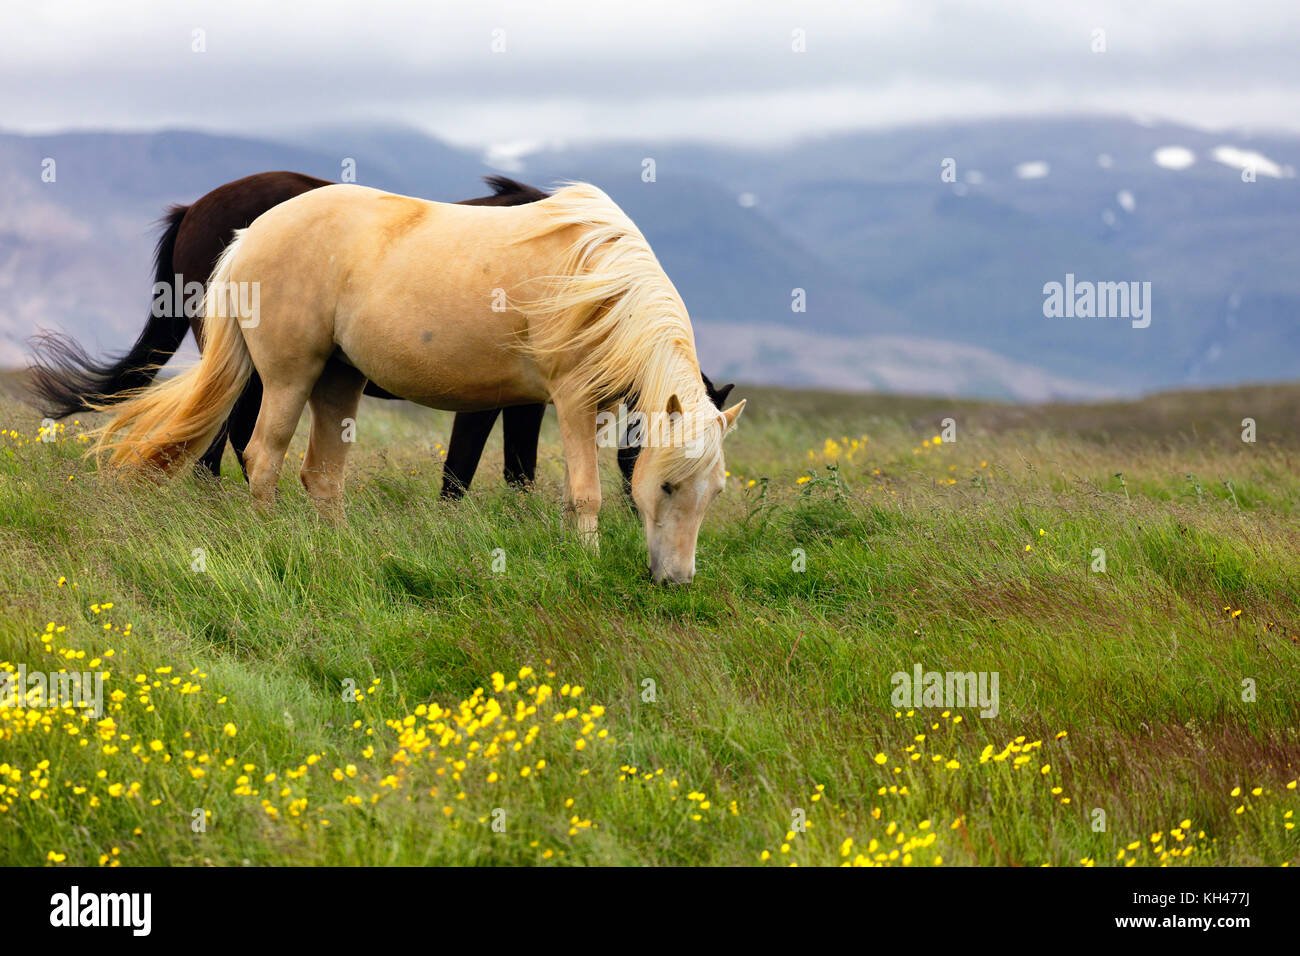 Horses Grazing on a Meadow, Iceland - Stock Image